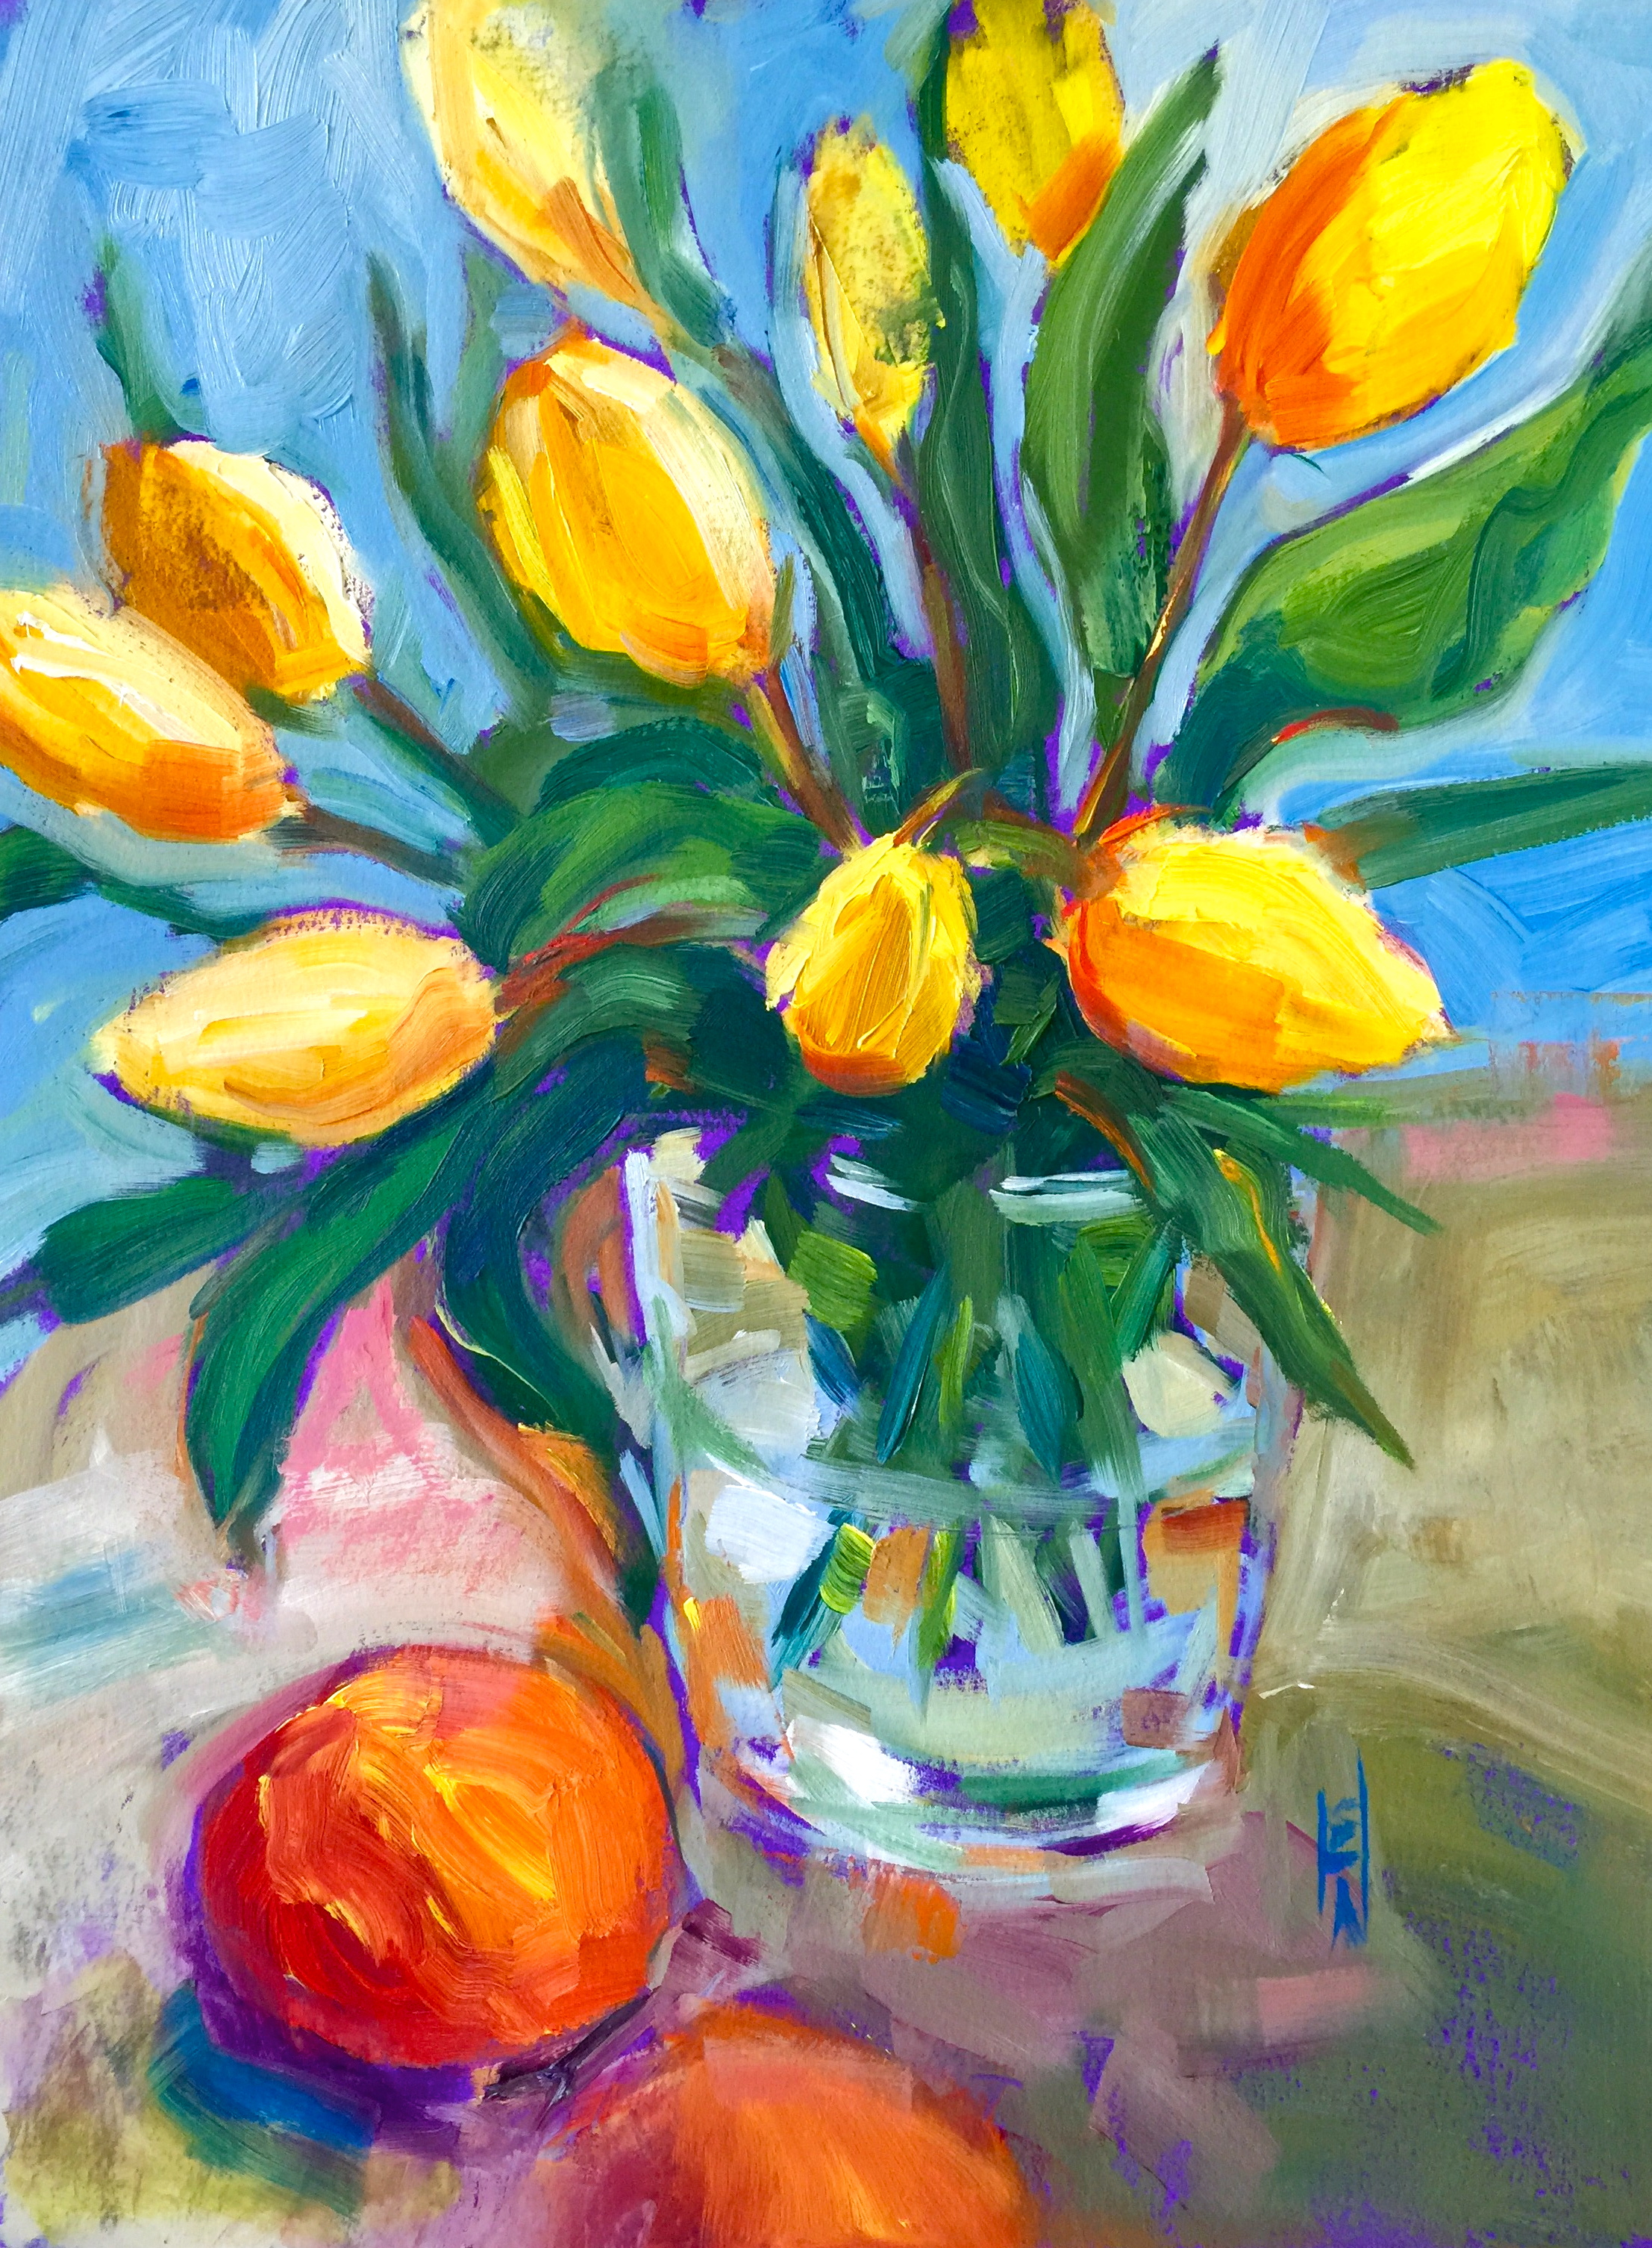 Karen's Tulips, 12x16, oil on Arches paper, available